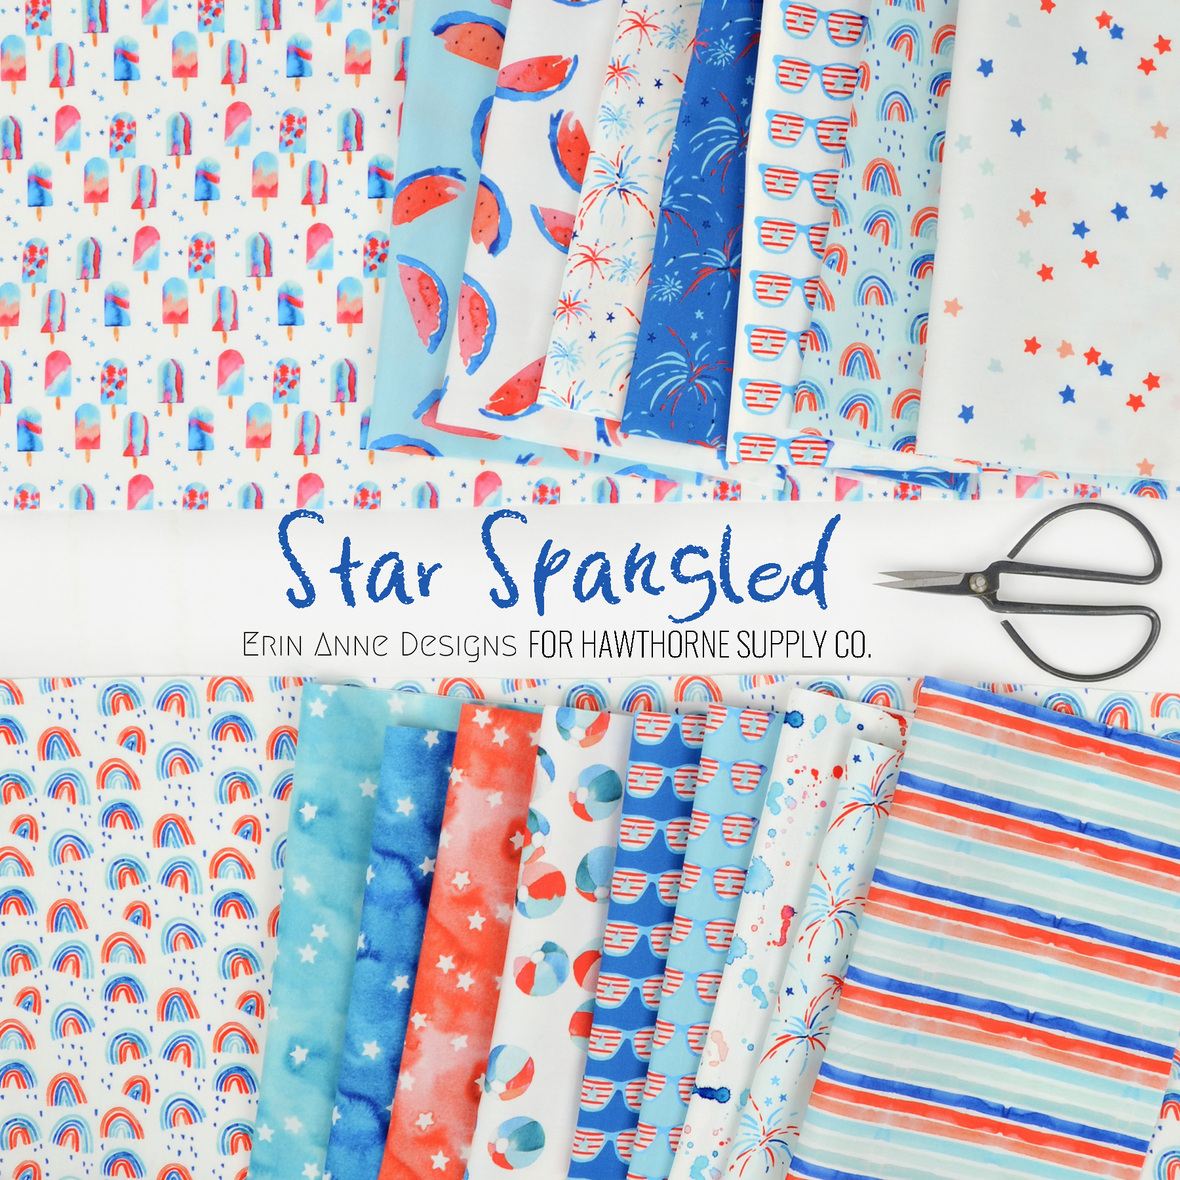 Star-Spangled-Fabric-Erin-Anne-at-Hawthorne-Supply-Co.